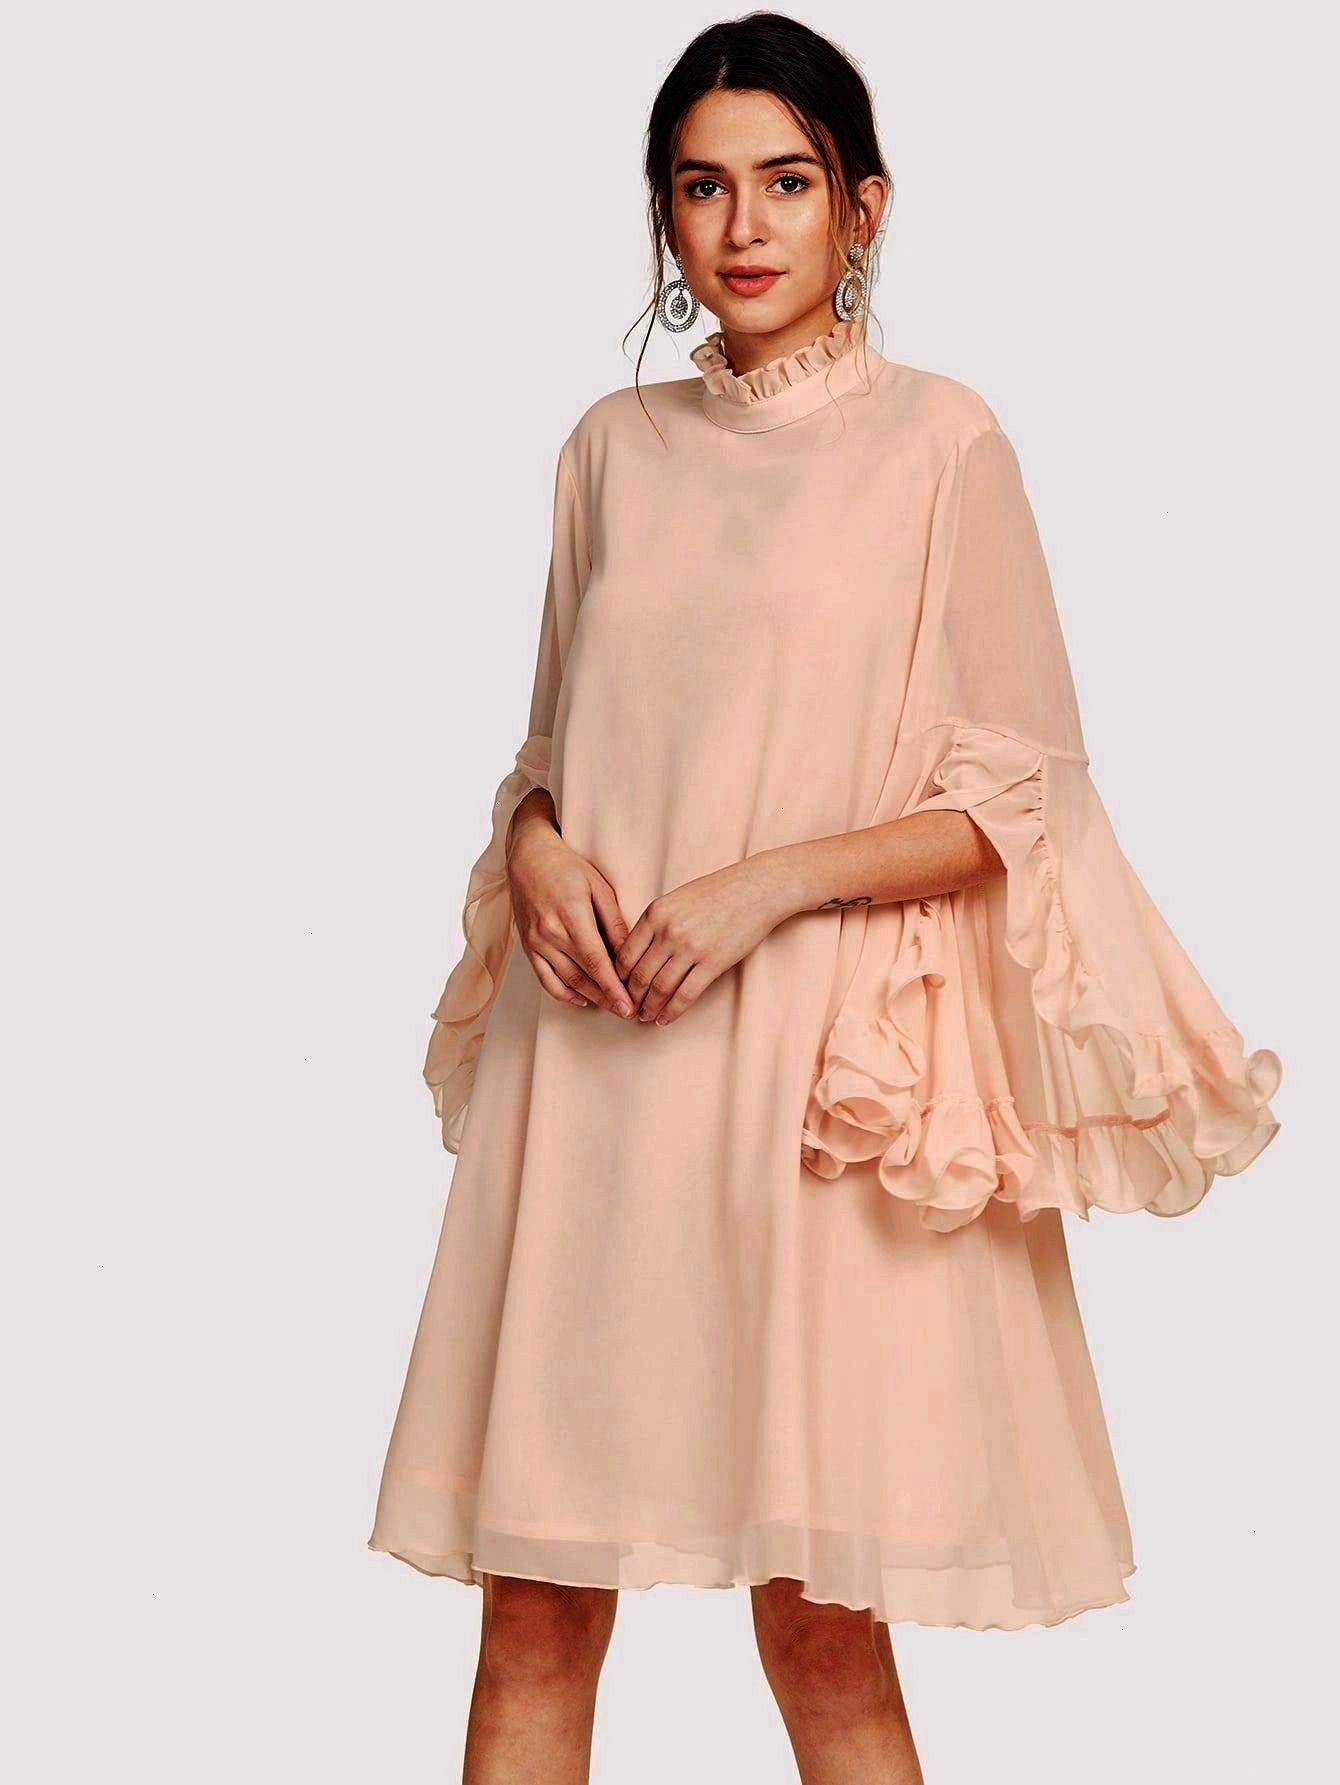 Loose Stand Collar Three Quarter Length Sleeve Natural Beige and Pastel Midi Length Frill Sleeve And Cuff Flowy DressbeigeRomantic Tunic Plain Loose Stand Collar Three Qu...